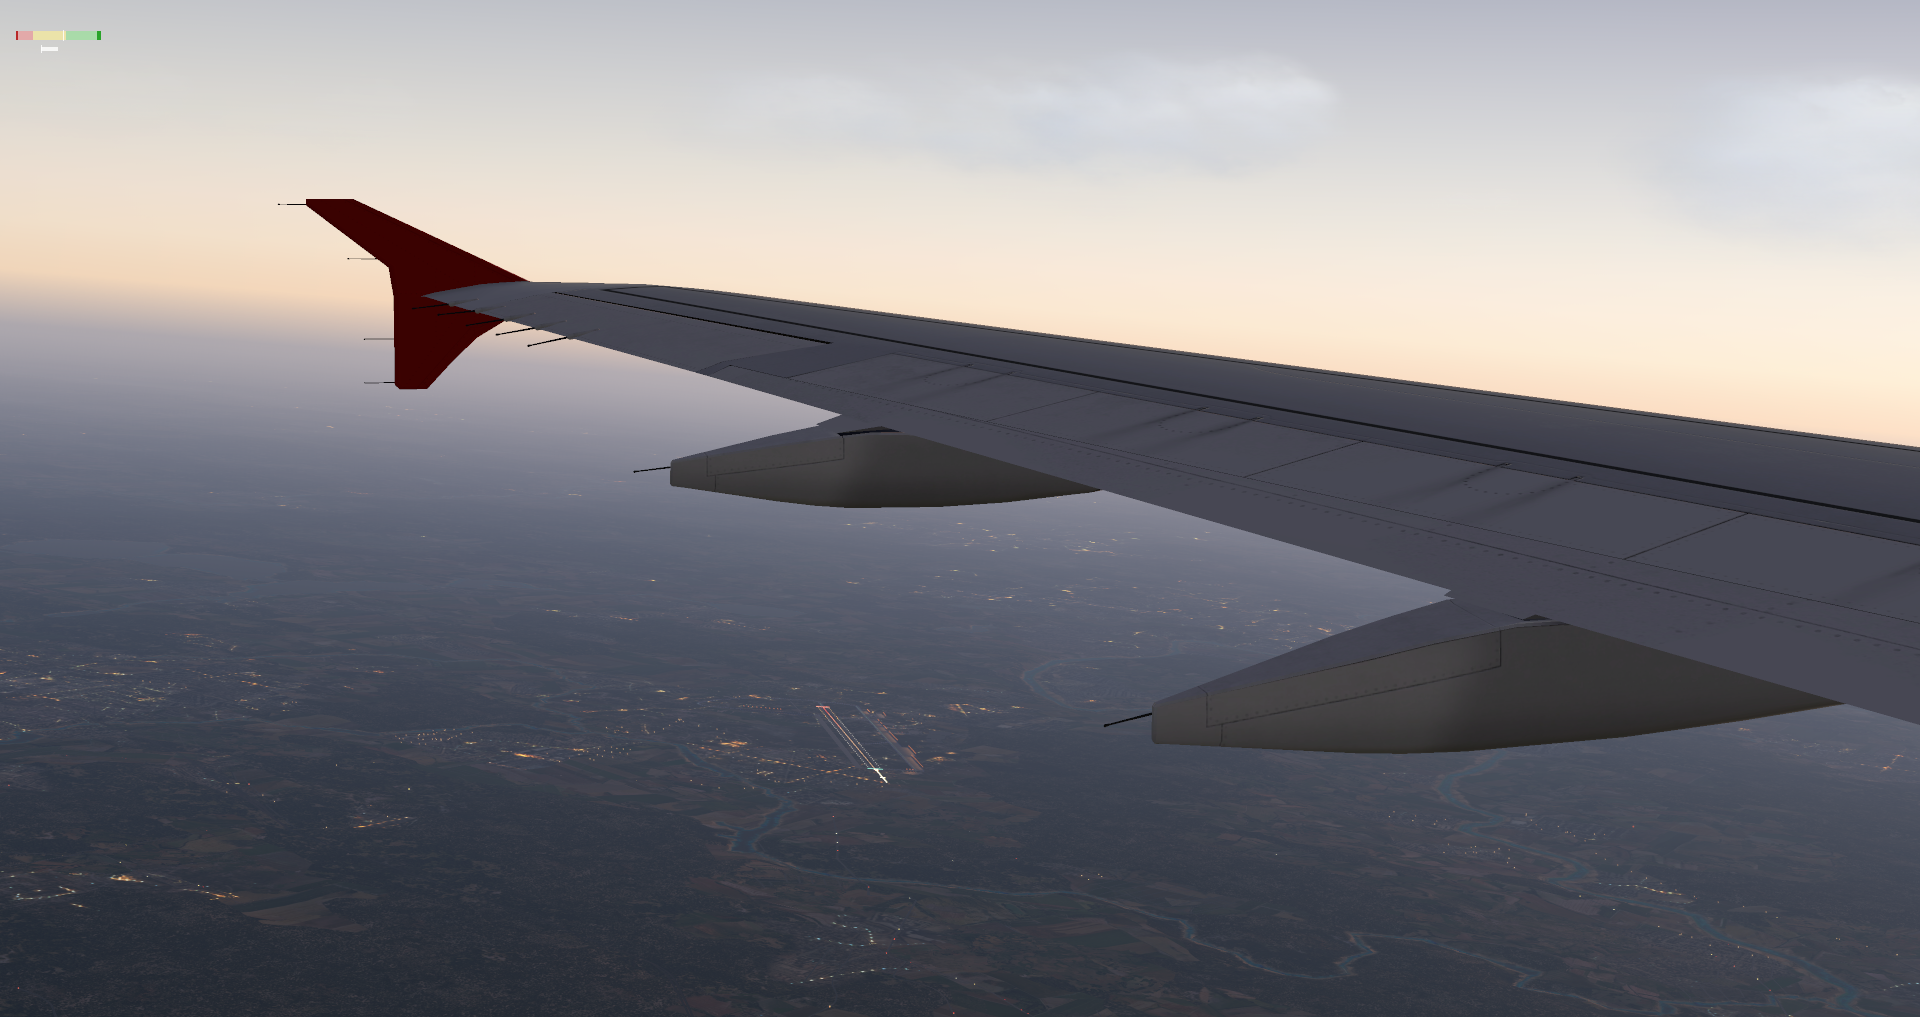 A320 - 2019-07-28 20.07.46.png